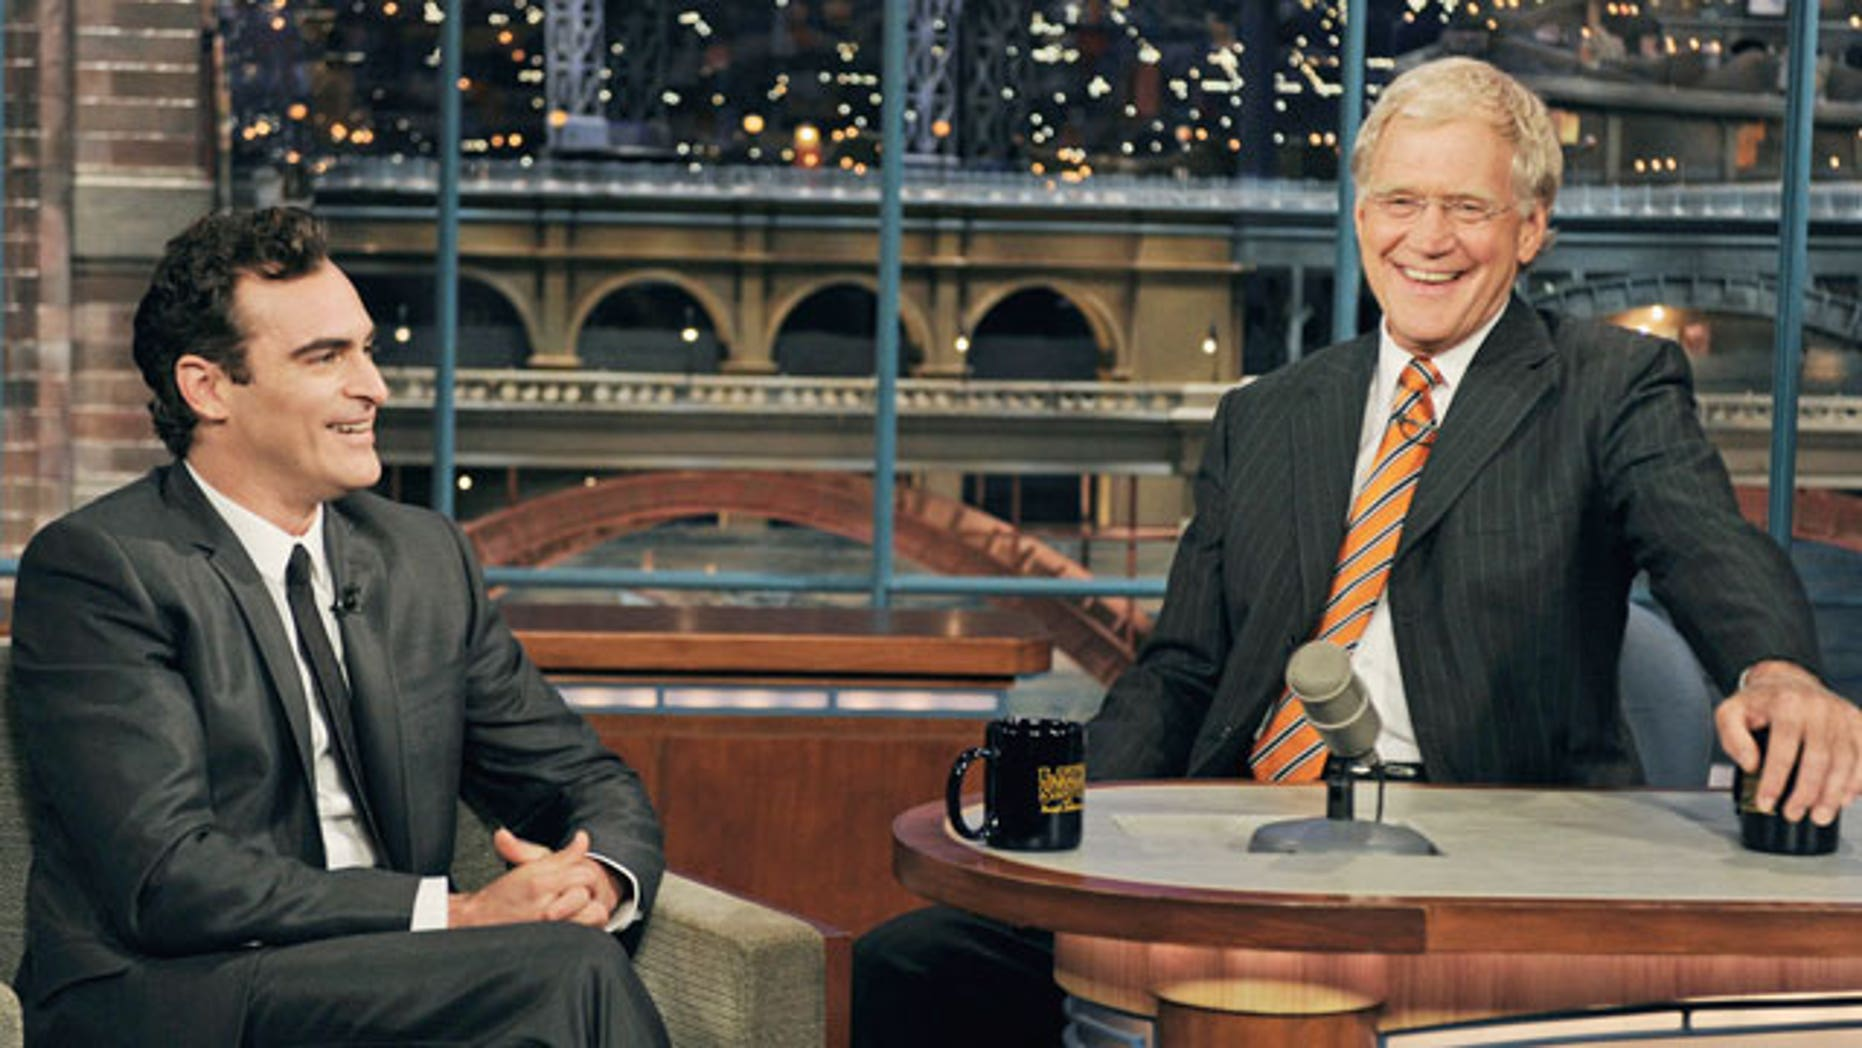 """Sept. 22: In this photo released by CBS, actor Joaquin Phoenix, left, gestures to host David Letterman on the set of the """"Late Show with David Letterman."""""""